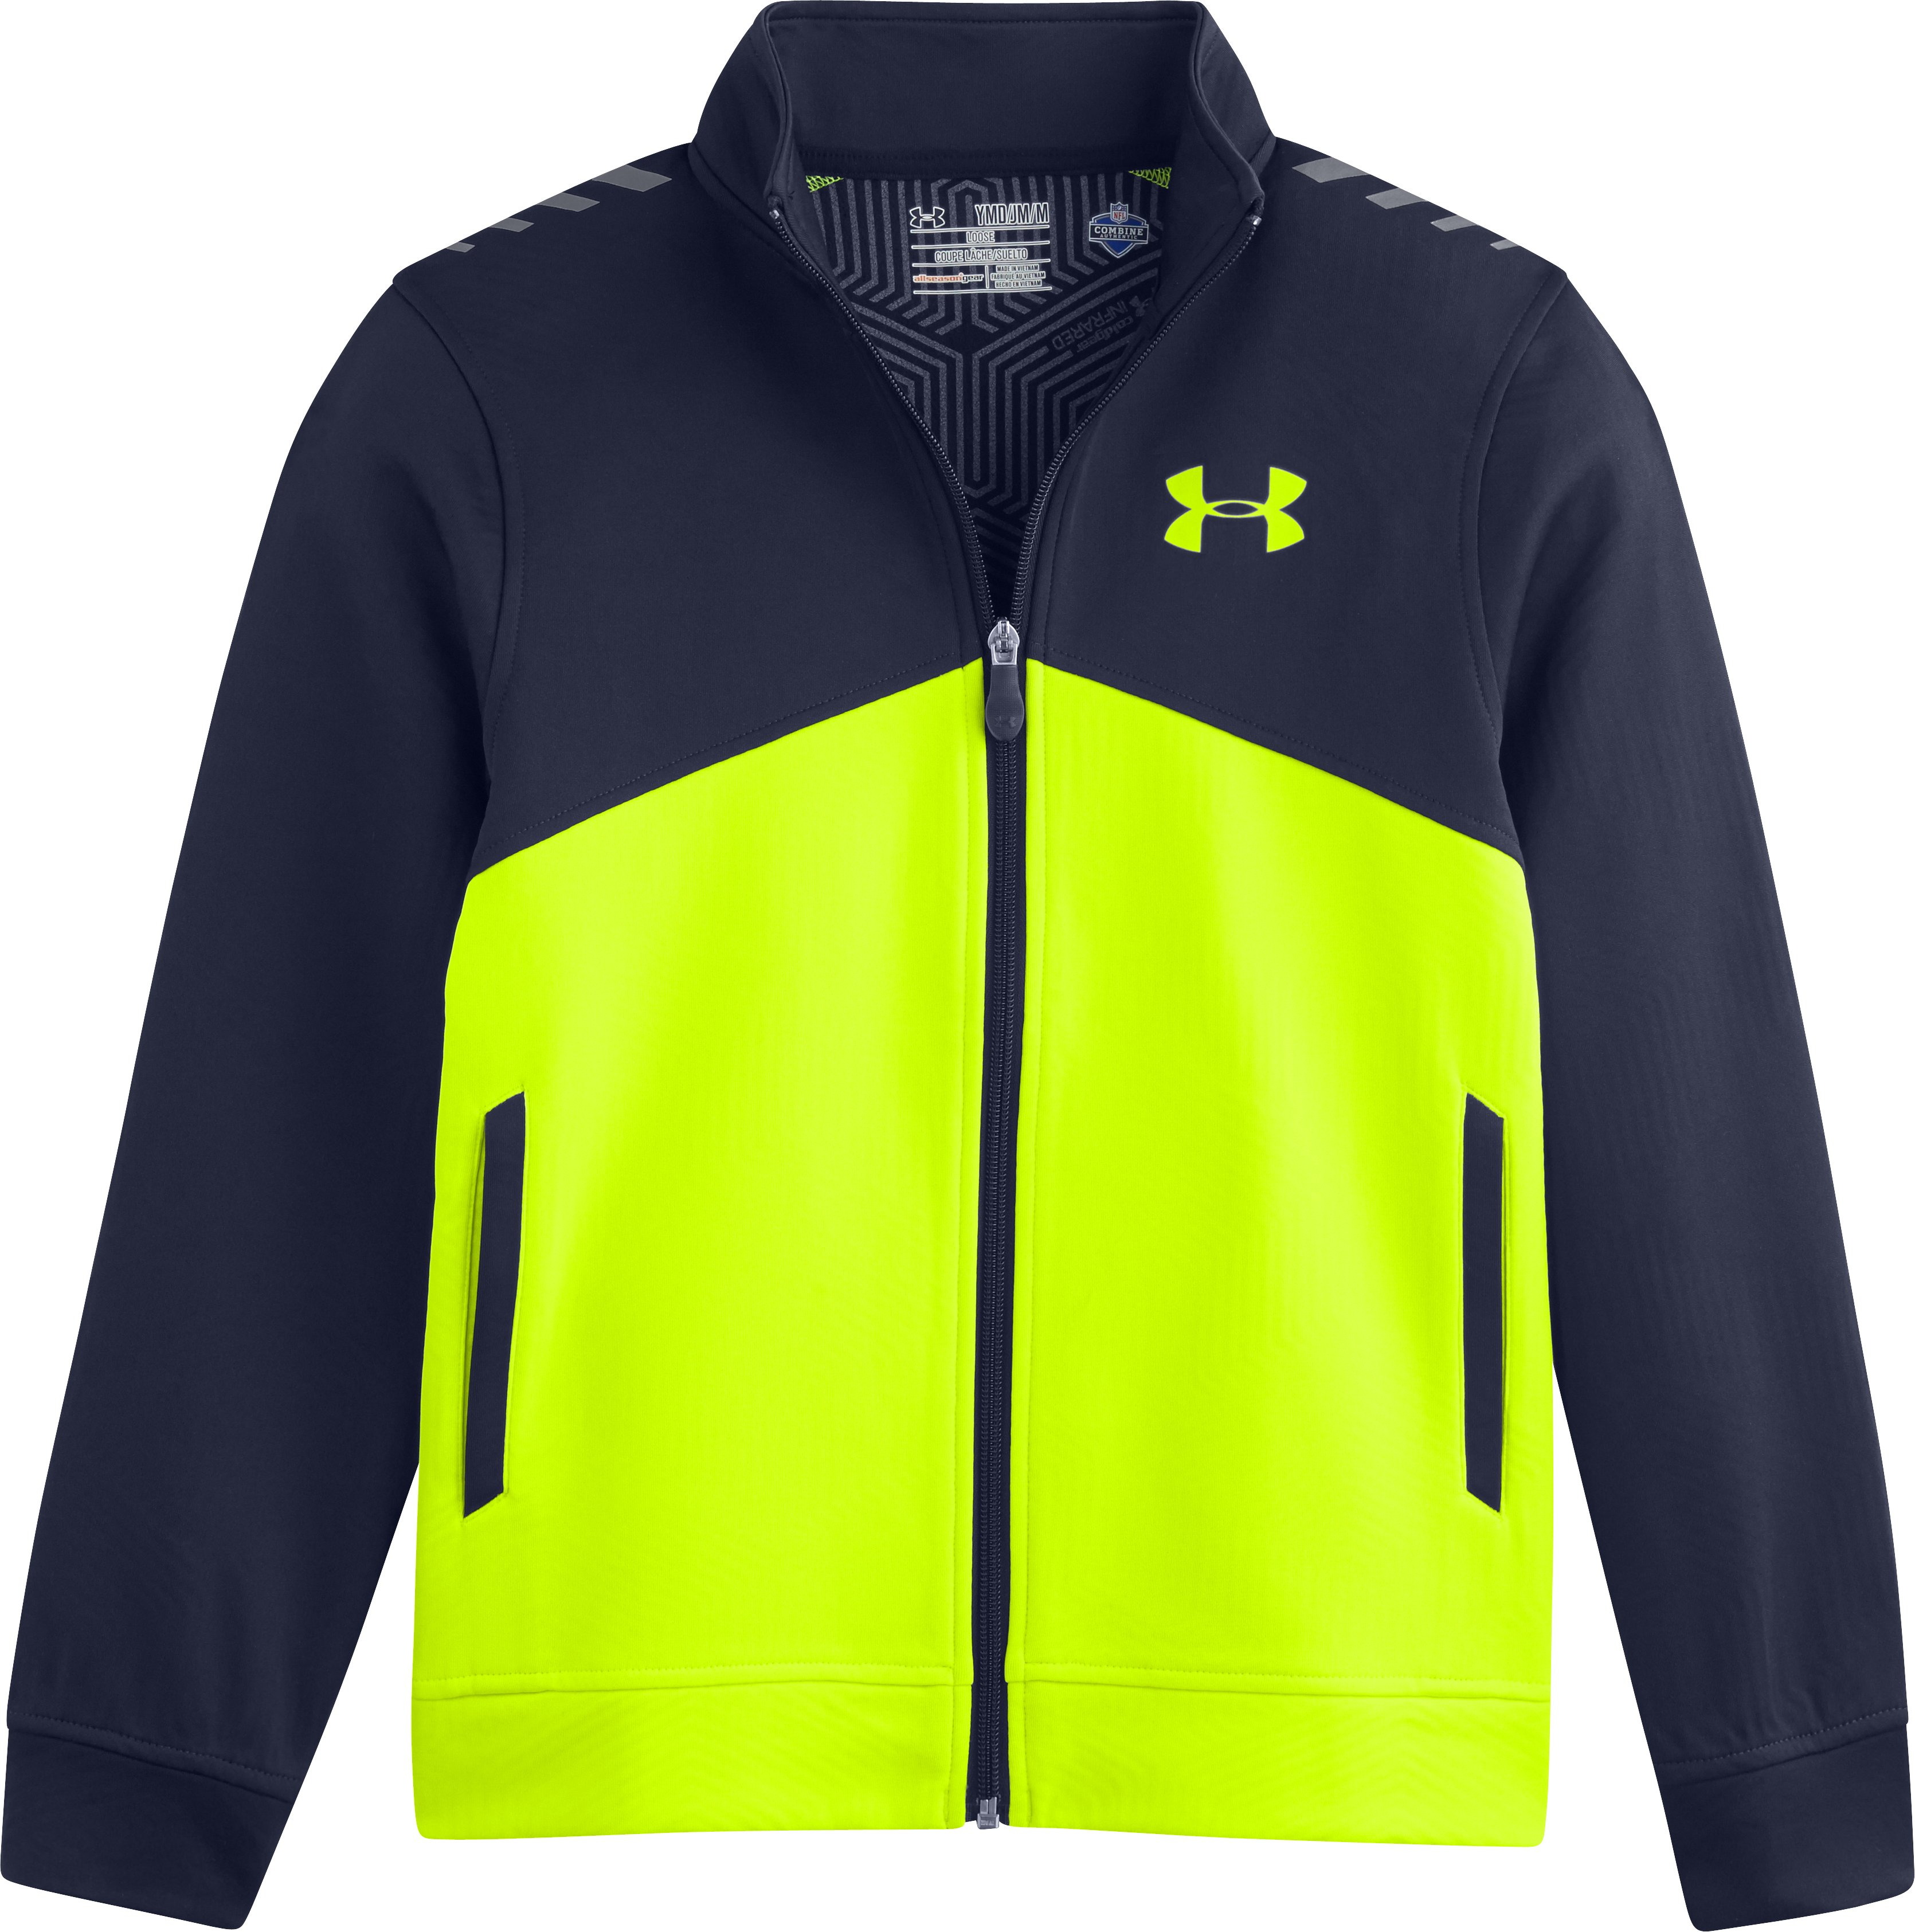 Boys' NFL Combine Authentic ColdGear® Infrared Warm-Up Jacket, High-Vis Yellow, Laydown